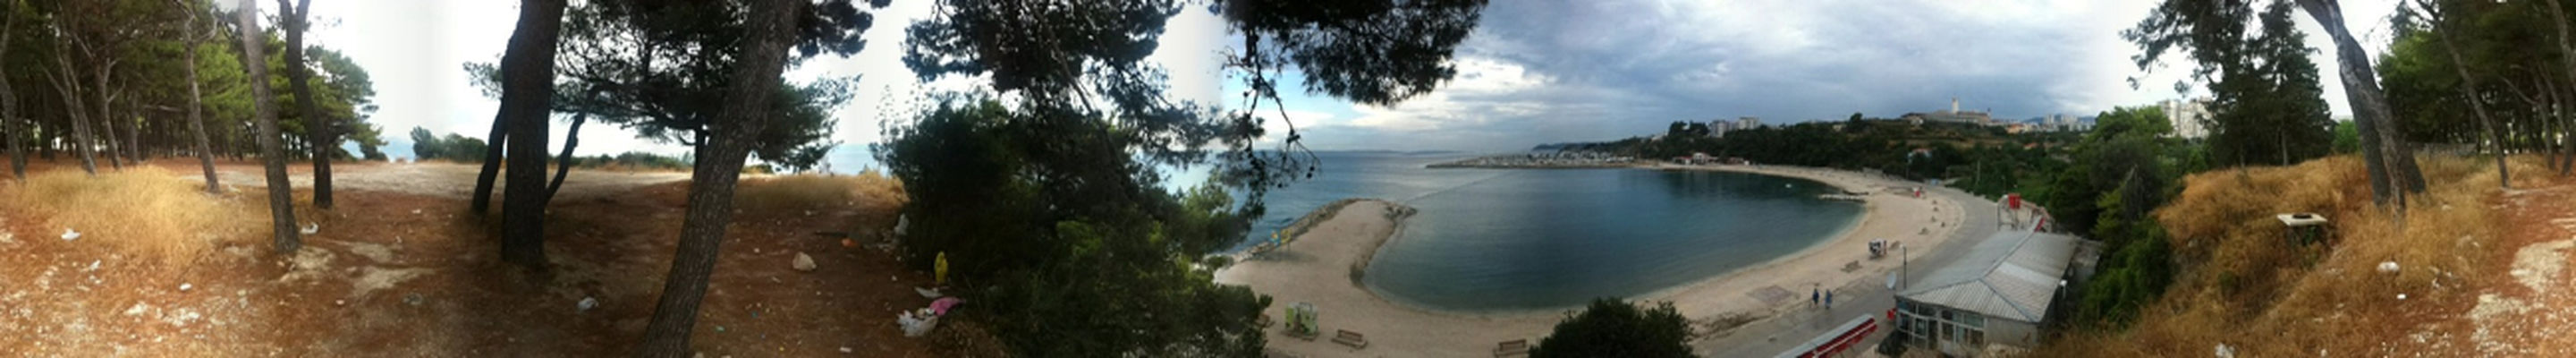 Panorama in Split by expatjournal